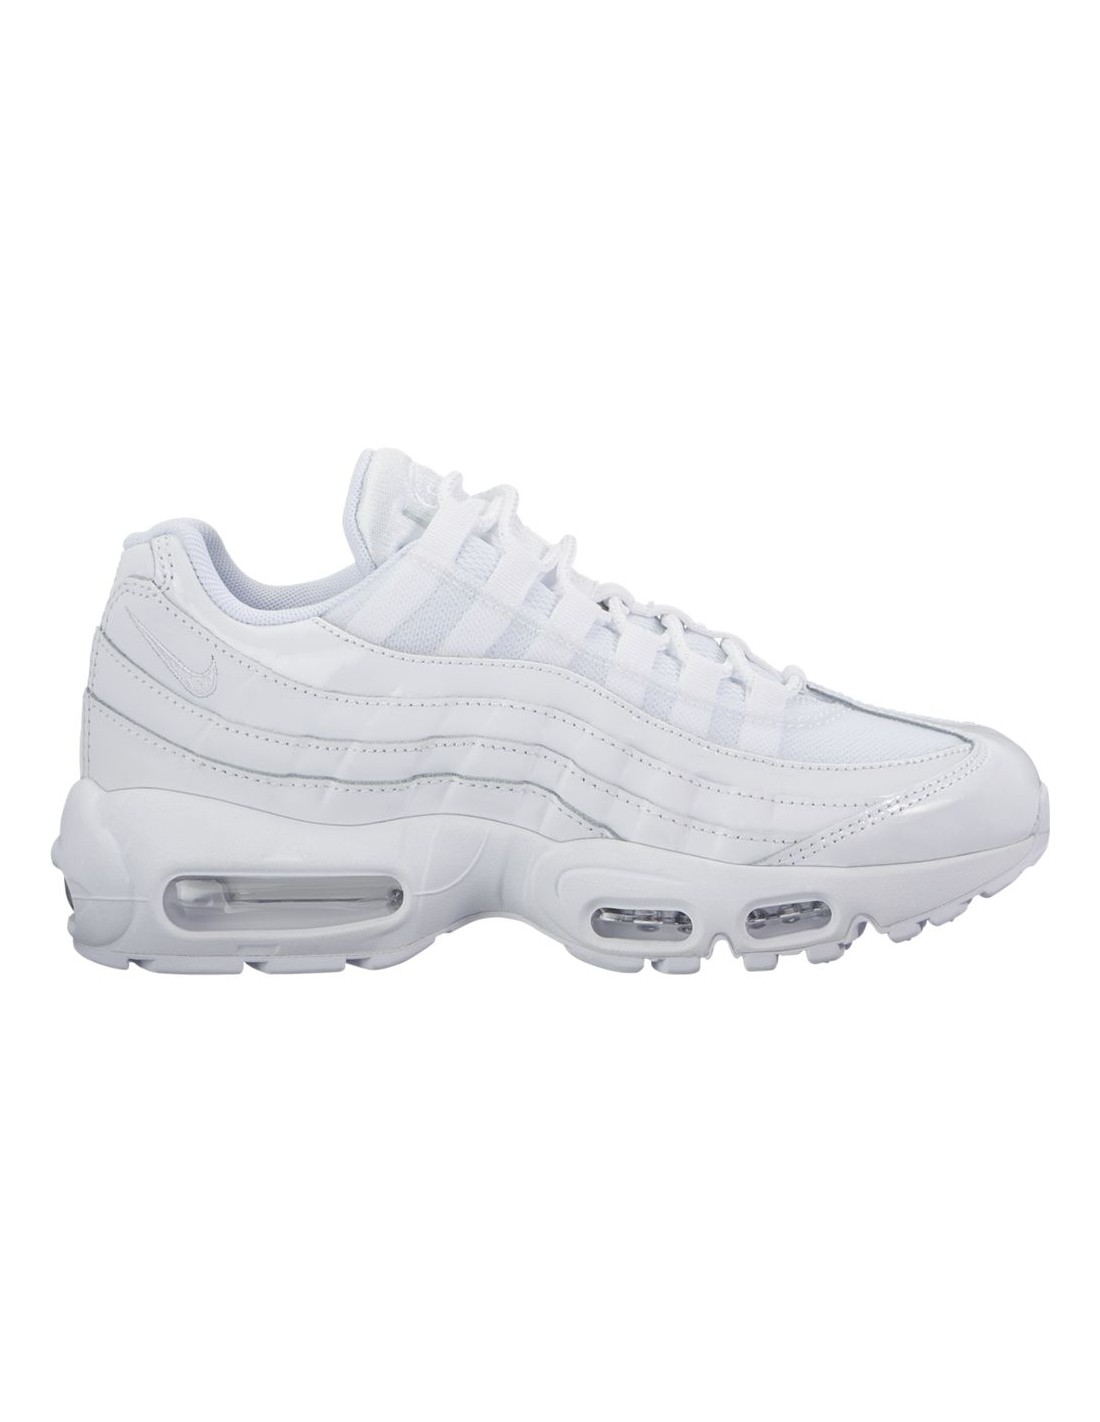 23cd4acdb8fe ... buy sneaker femme nike blanc womens nike air max 95 shoe 307960 108  8d5cc 1f910